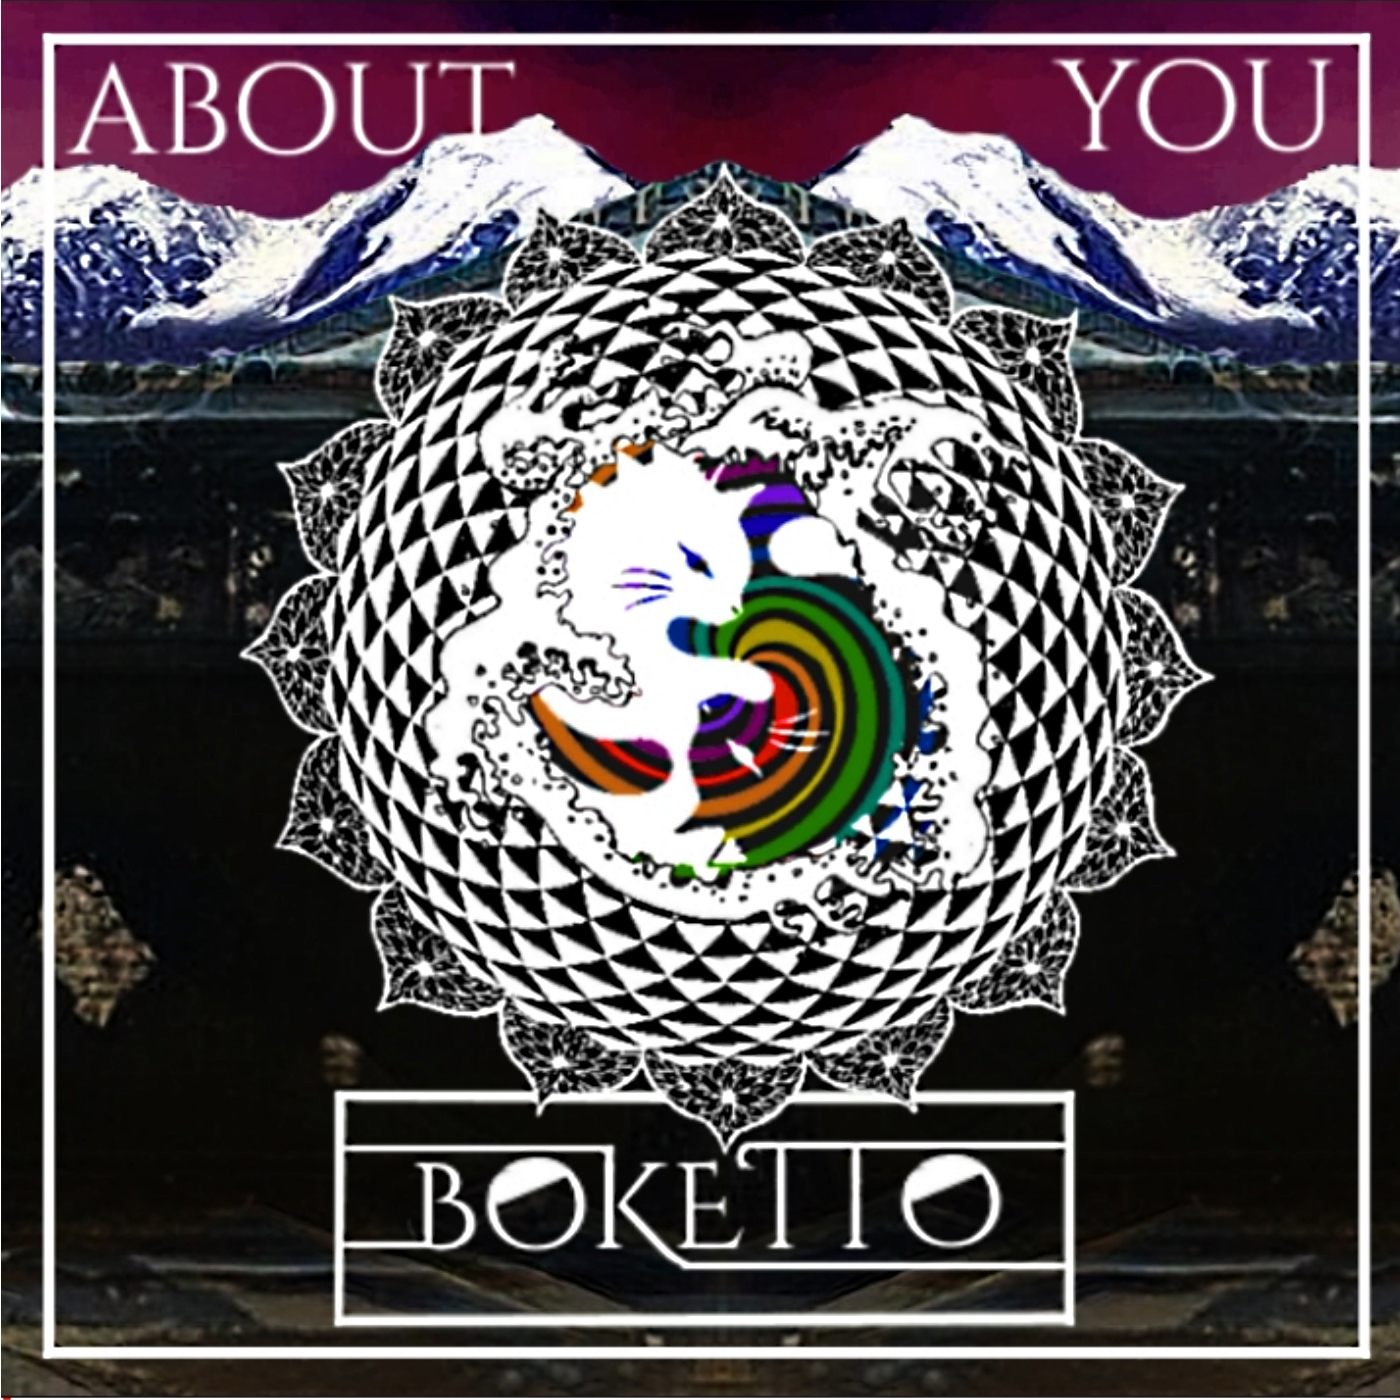 About You - digital cover large Boketto